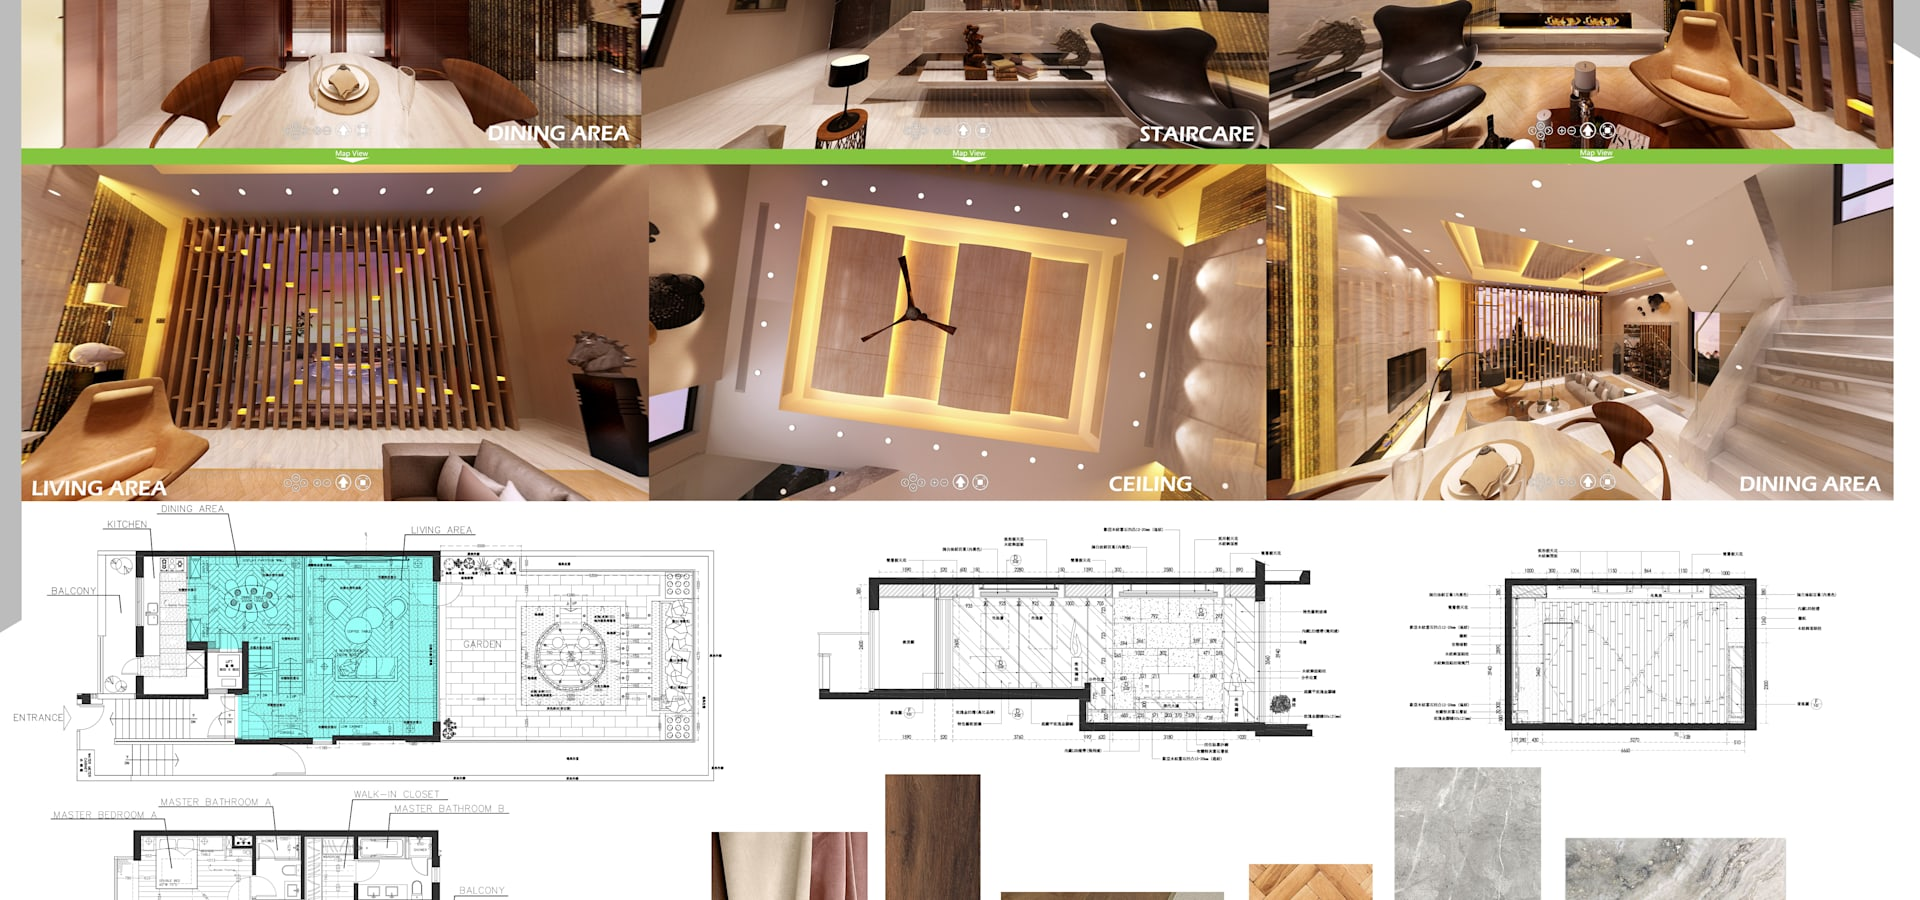 design for life interiors limited